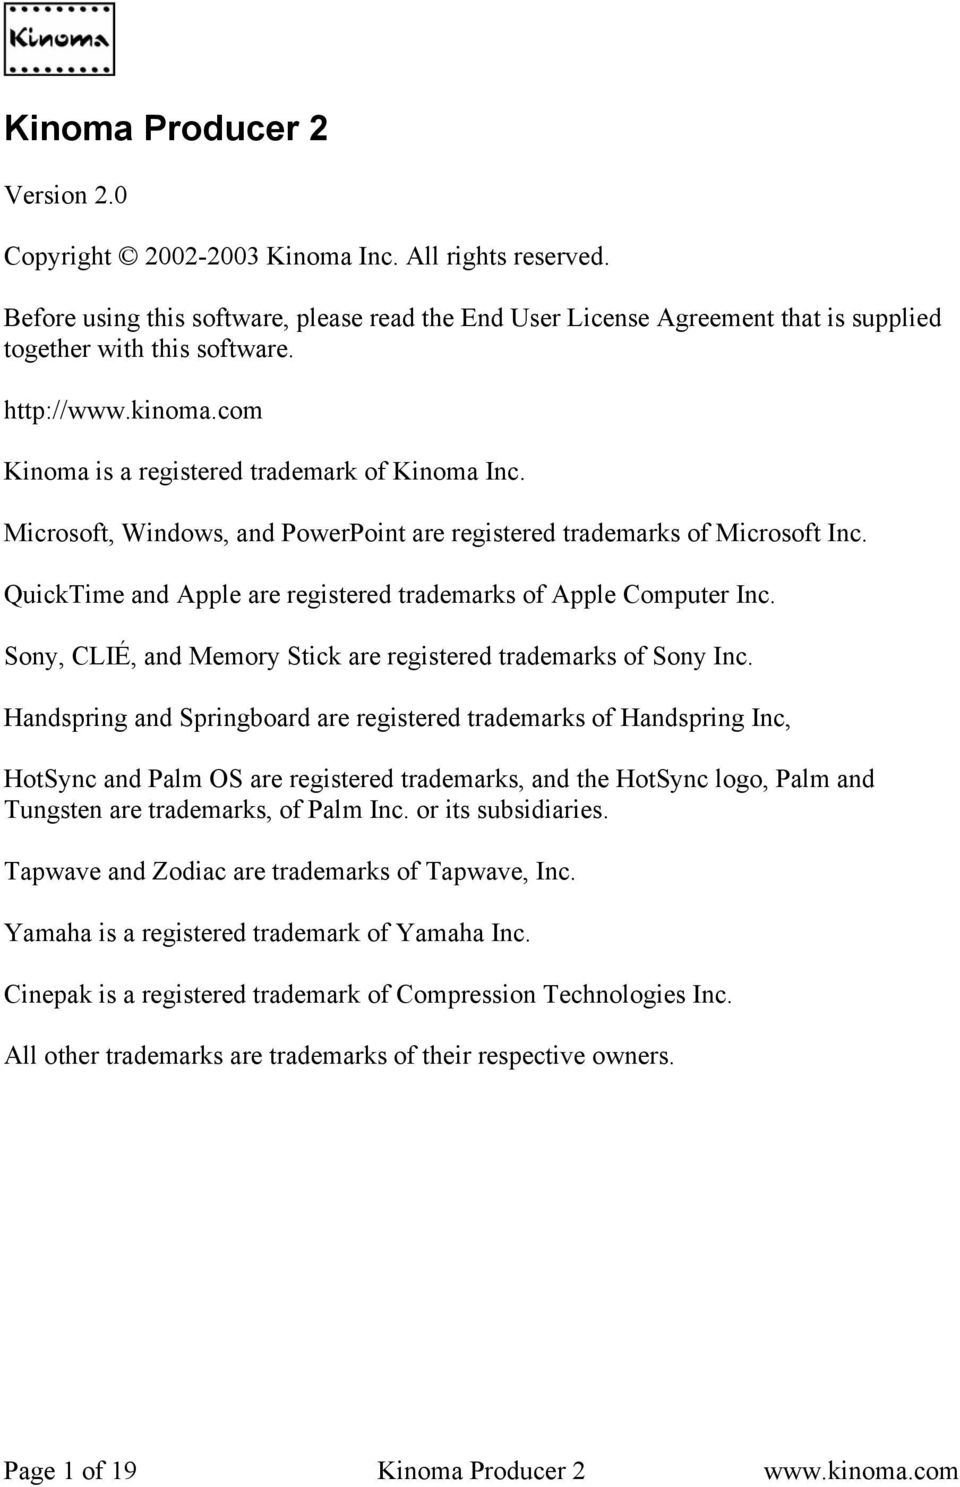 QuickTime and Apple are registered trademarks of Apple Computer Inc. Sony, CLIÉ, and Memory Stick are registered trademarks of Sony Inc.